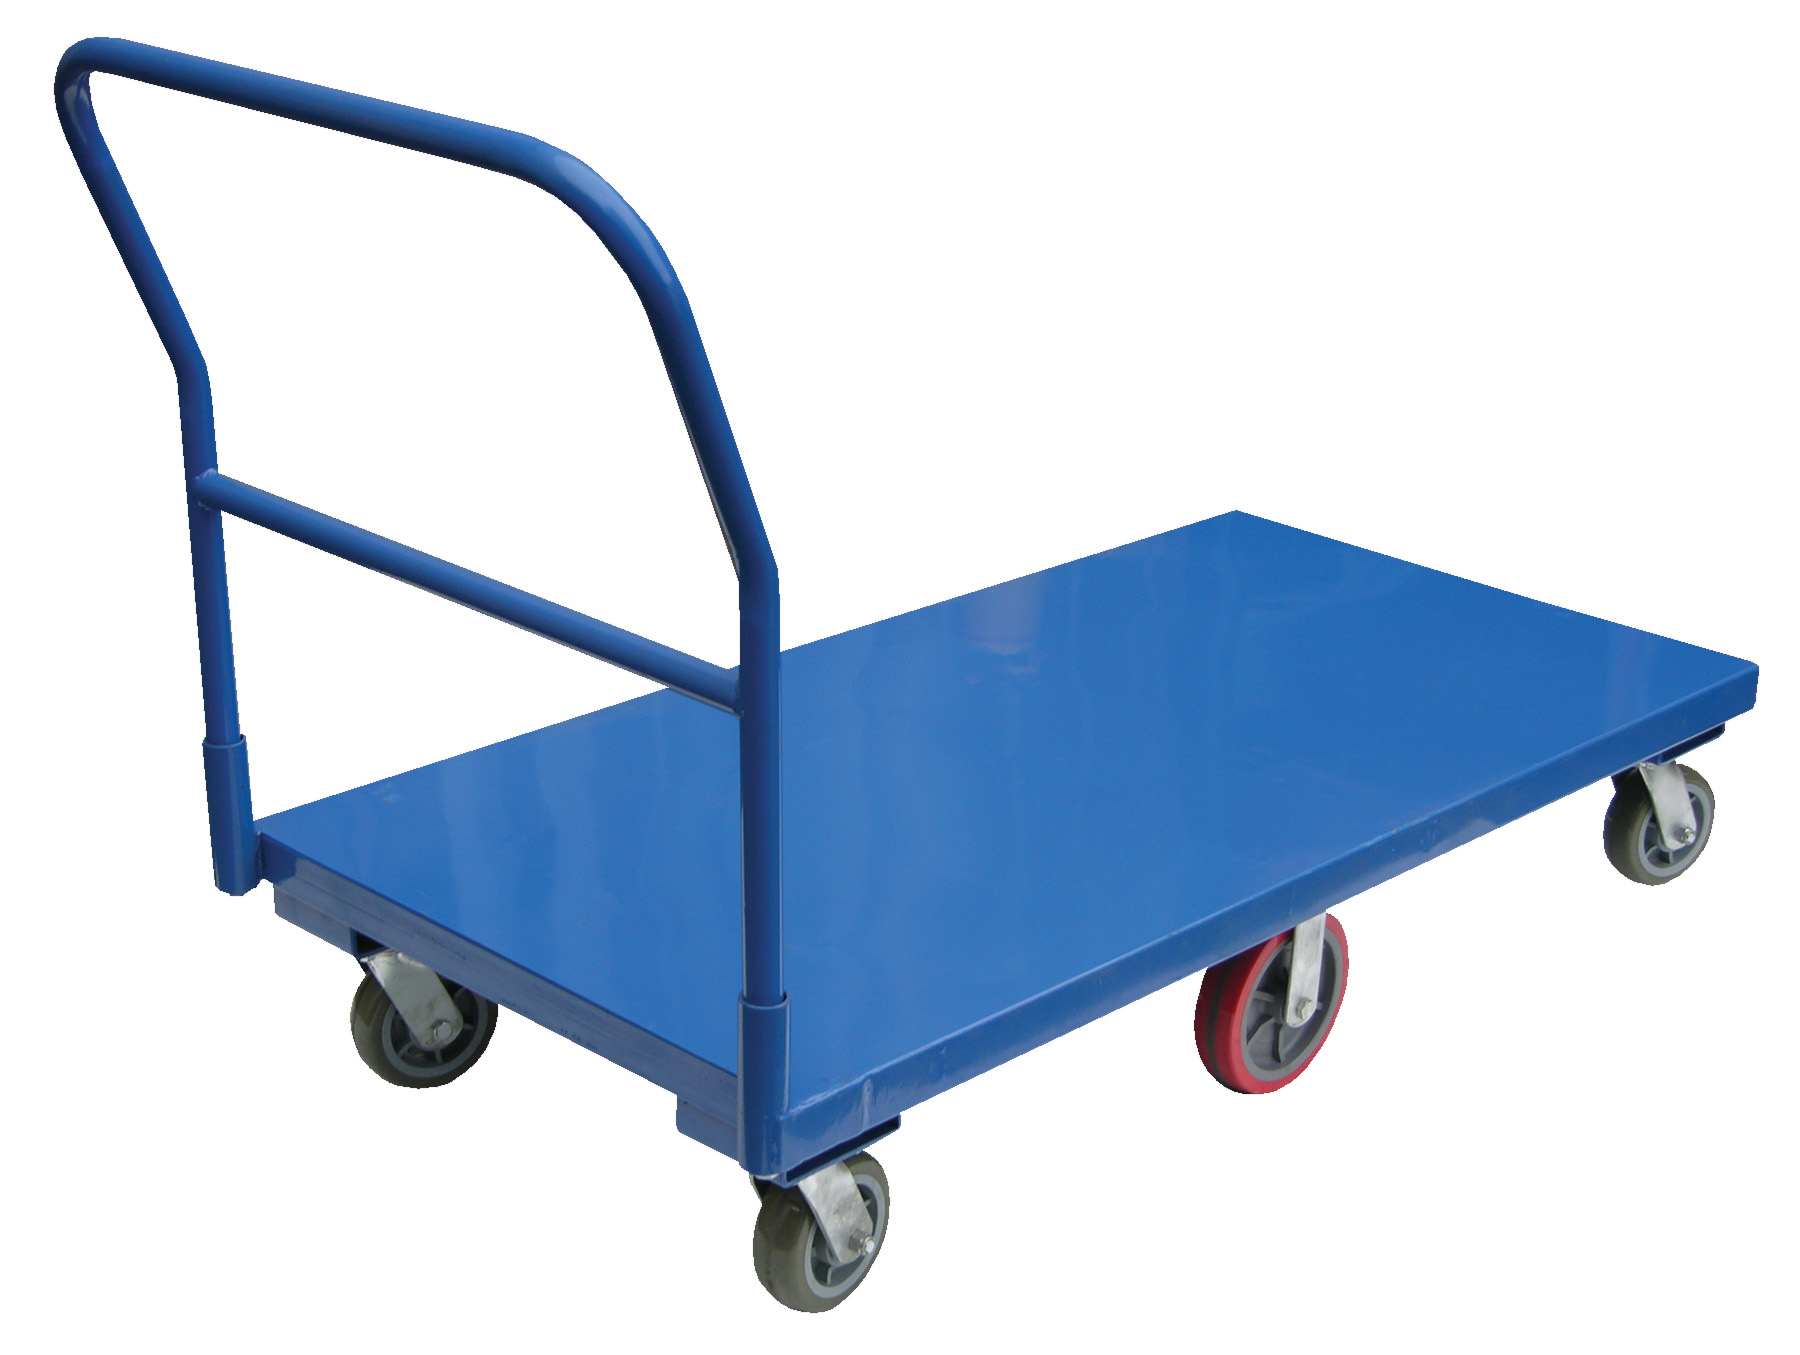 Flat Bed Cart P329 moreover B00D8U0VMG additionally Motorcycle Dolly as well Top Mount Rocker Recliner Springs Set 2 likewise Heavy Duty Platform Trucks Capacities To 5000 Lbs. on heavy duty swivel shopping cart